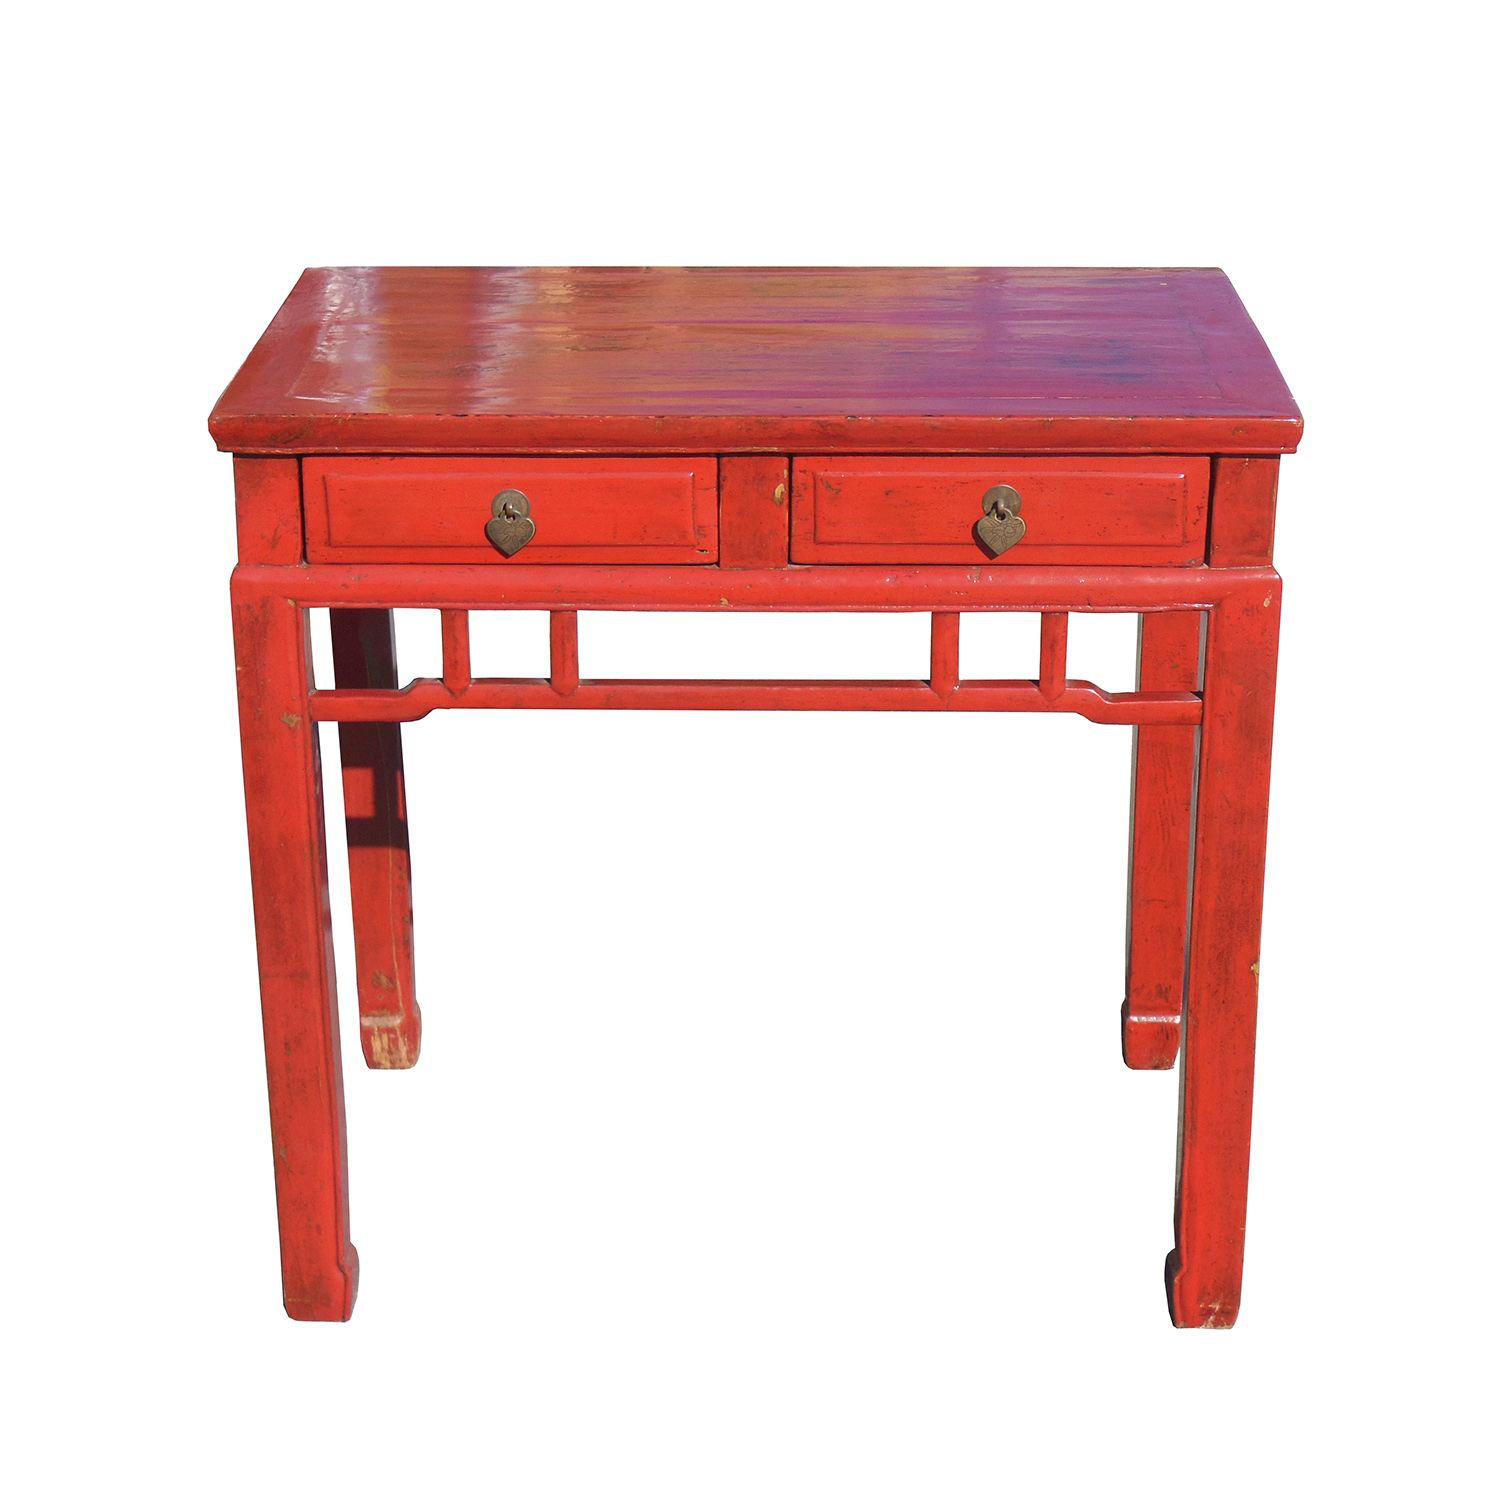 Shen's Gallery | Chinese Antiques | Side Table & Square Table | Bay Area With Regard To Layered Wood Small Square Console Tables (View 21 of 30)